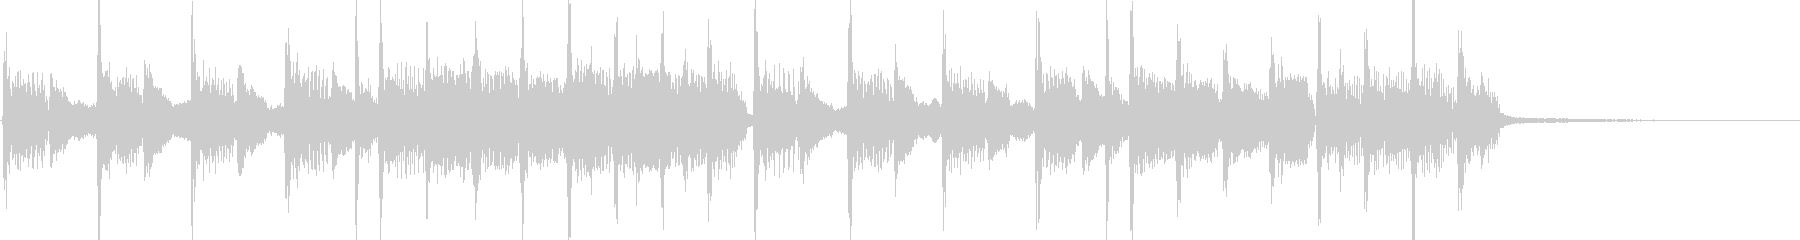 Jingle that makes the image of a small mischief's unreproduced waveform